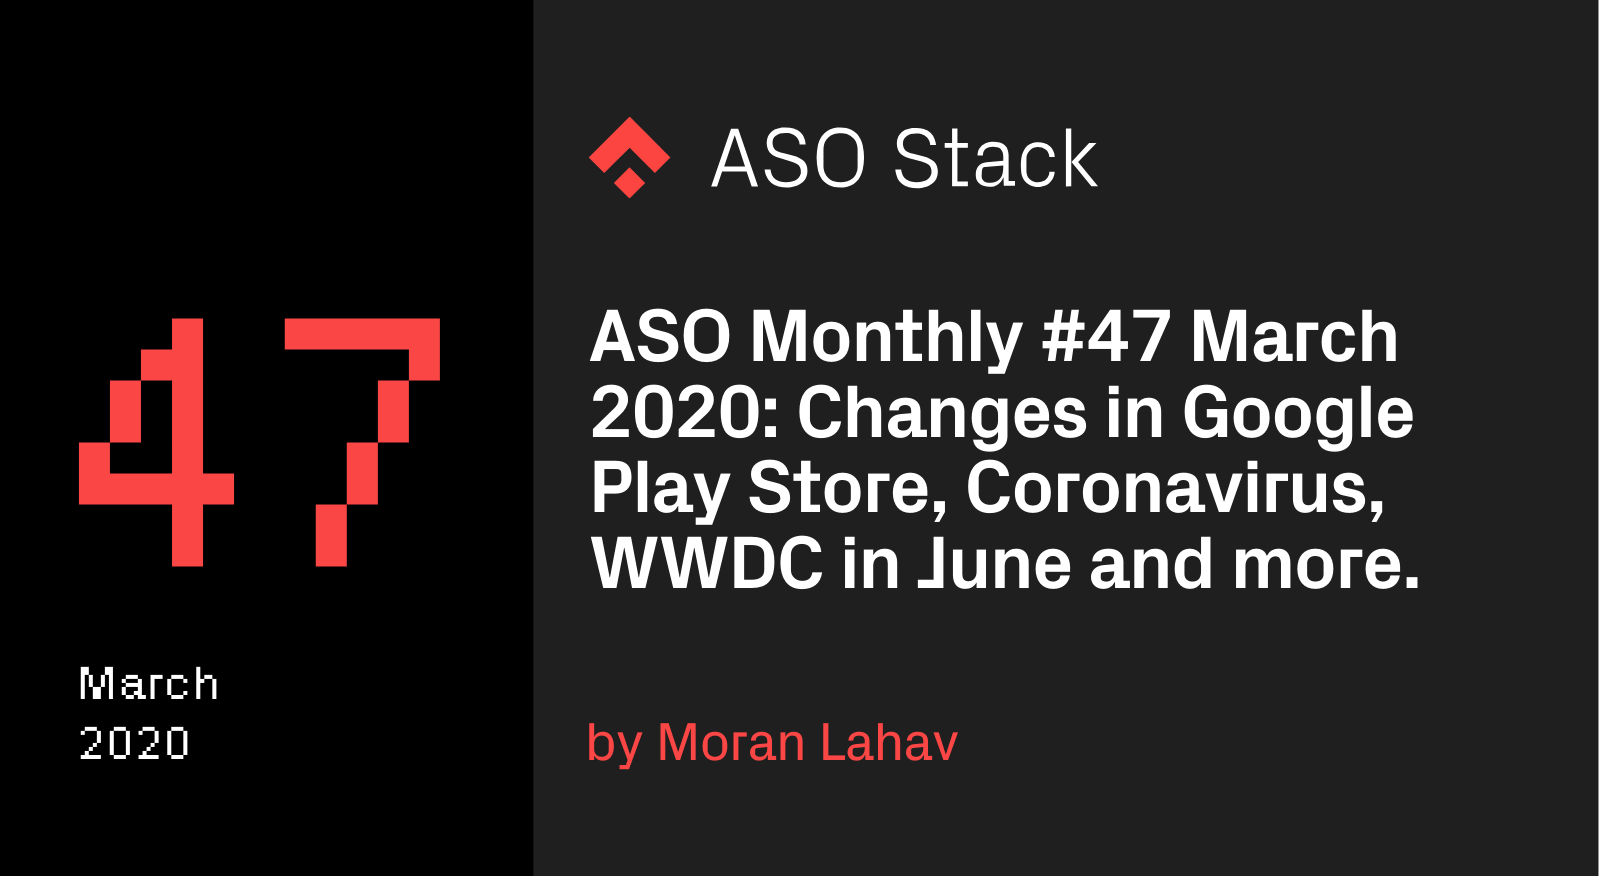 ASO Monthly #47 March 2020- Changes in Google Play Store, Coronavirus, WWDC in June and more